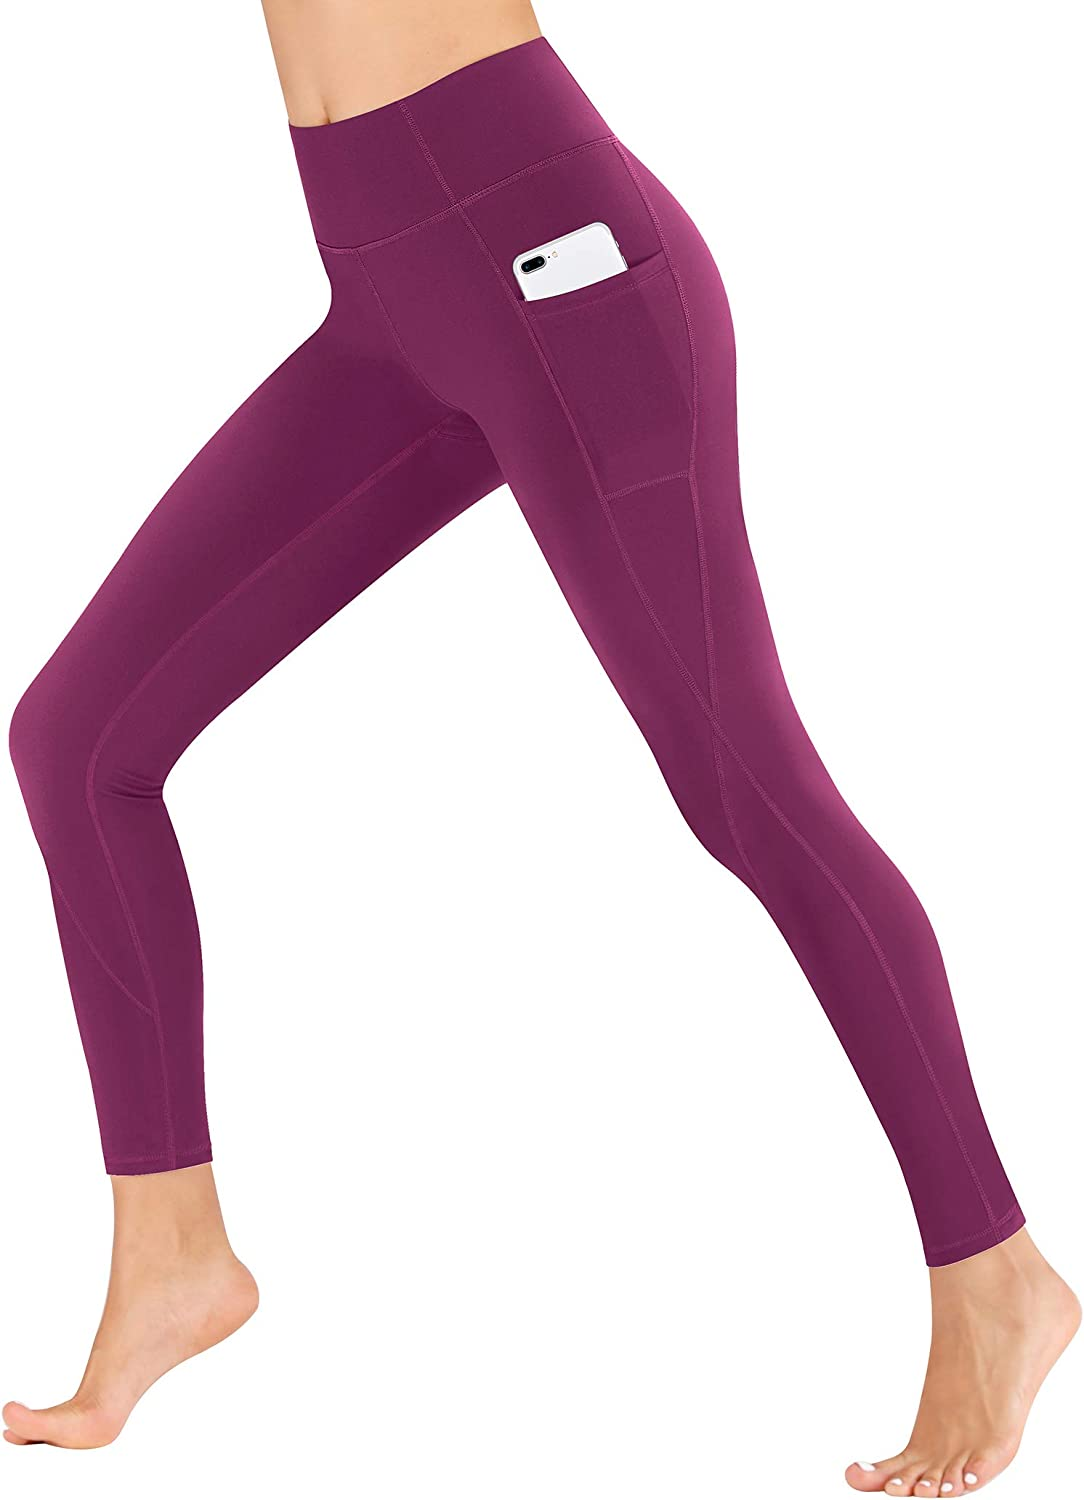 Heathyoga Yoga Pants with Pockets for Women Leggings with Pockets for Women No See-Through High Waisted Workout Leggings